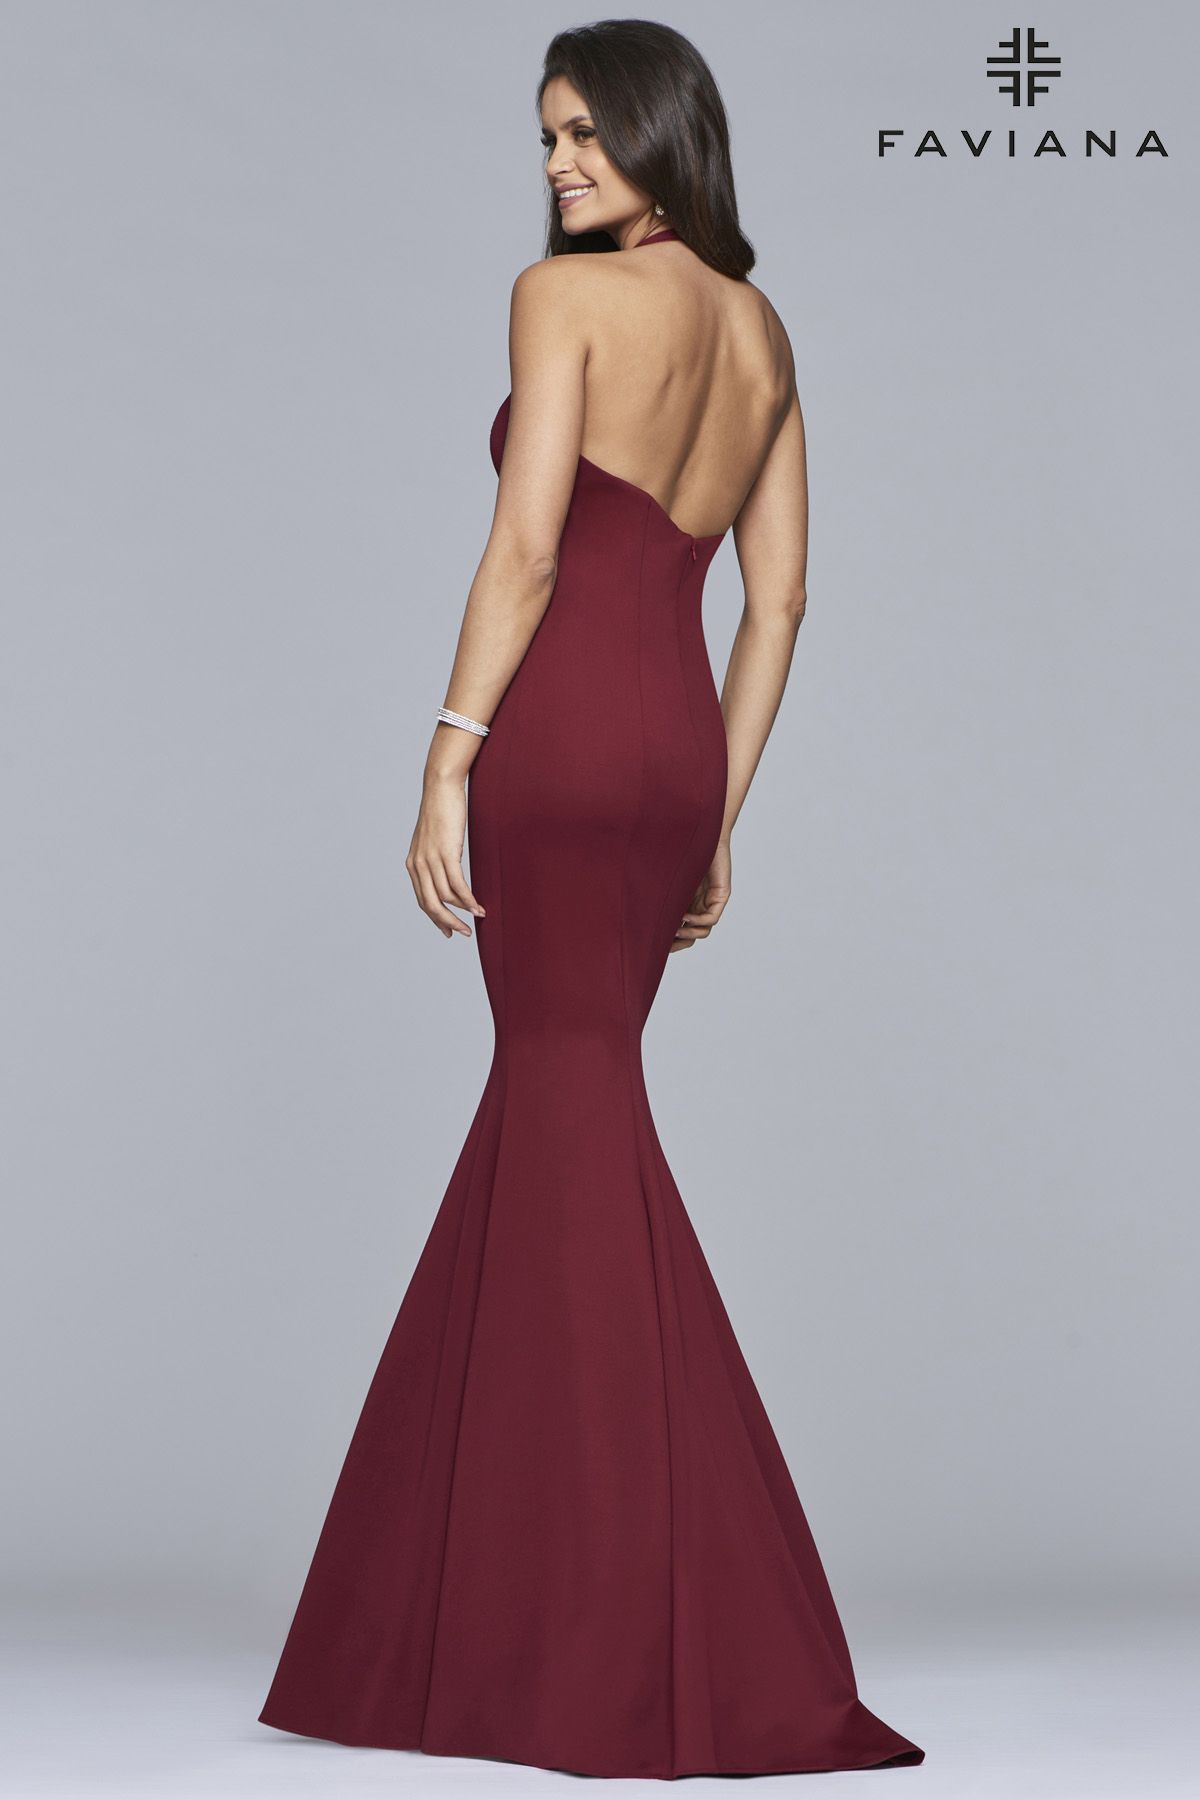 ca8a94108c0 Faviana style 10105 is sultry and classic. This form fitting luxe jersey  dress features a plunging neckline and a mermaid style skirt.